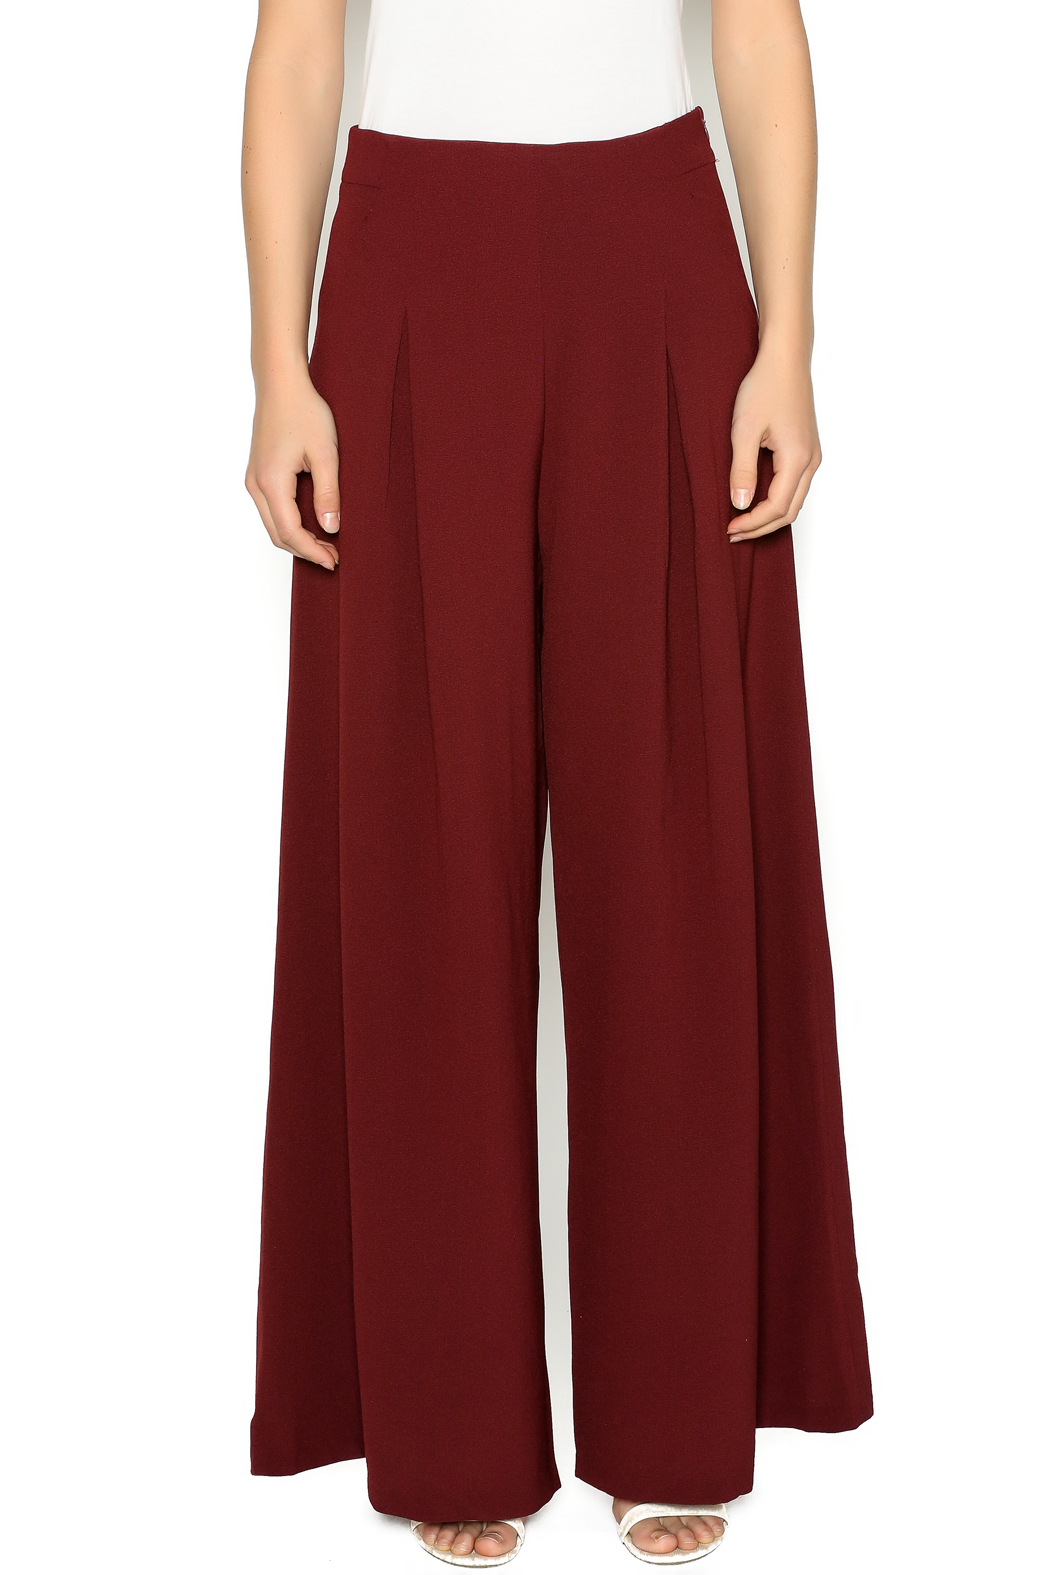 Jealous Tomatos Burgundy Palazzo Pants From Miramar Beach